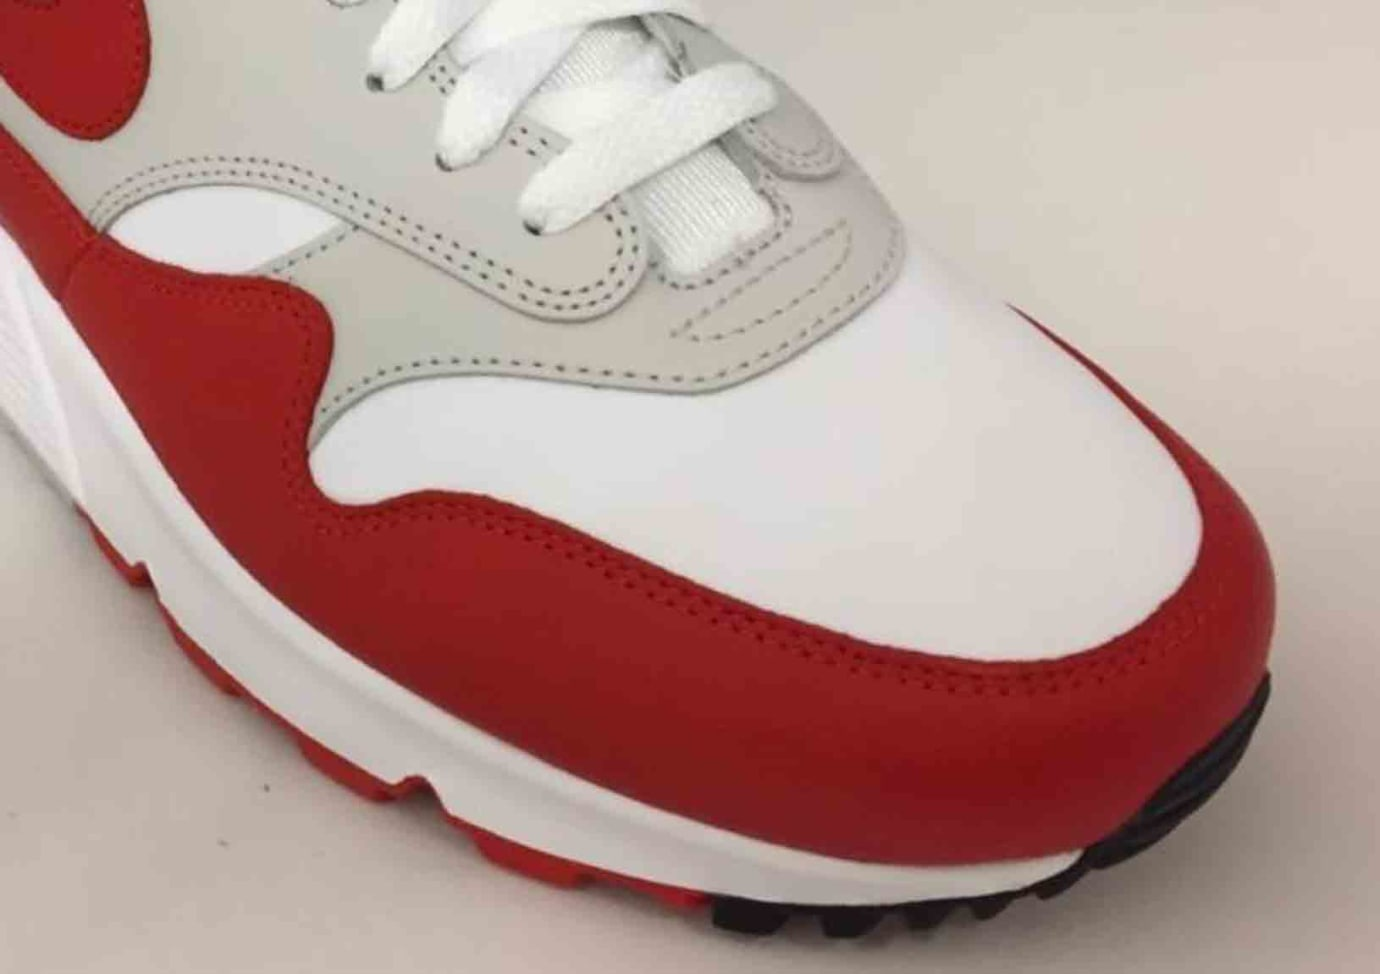 09cd39b4 Nike Air Max 90/1 'White/Red' Release Date | Sole Collector